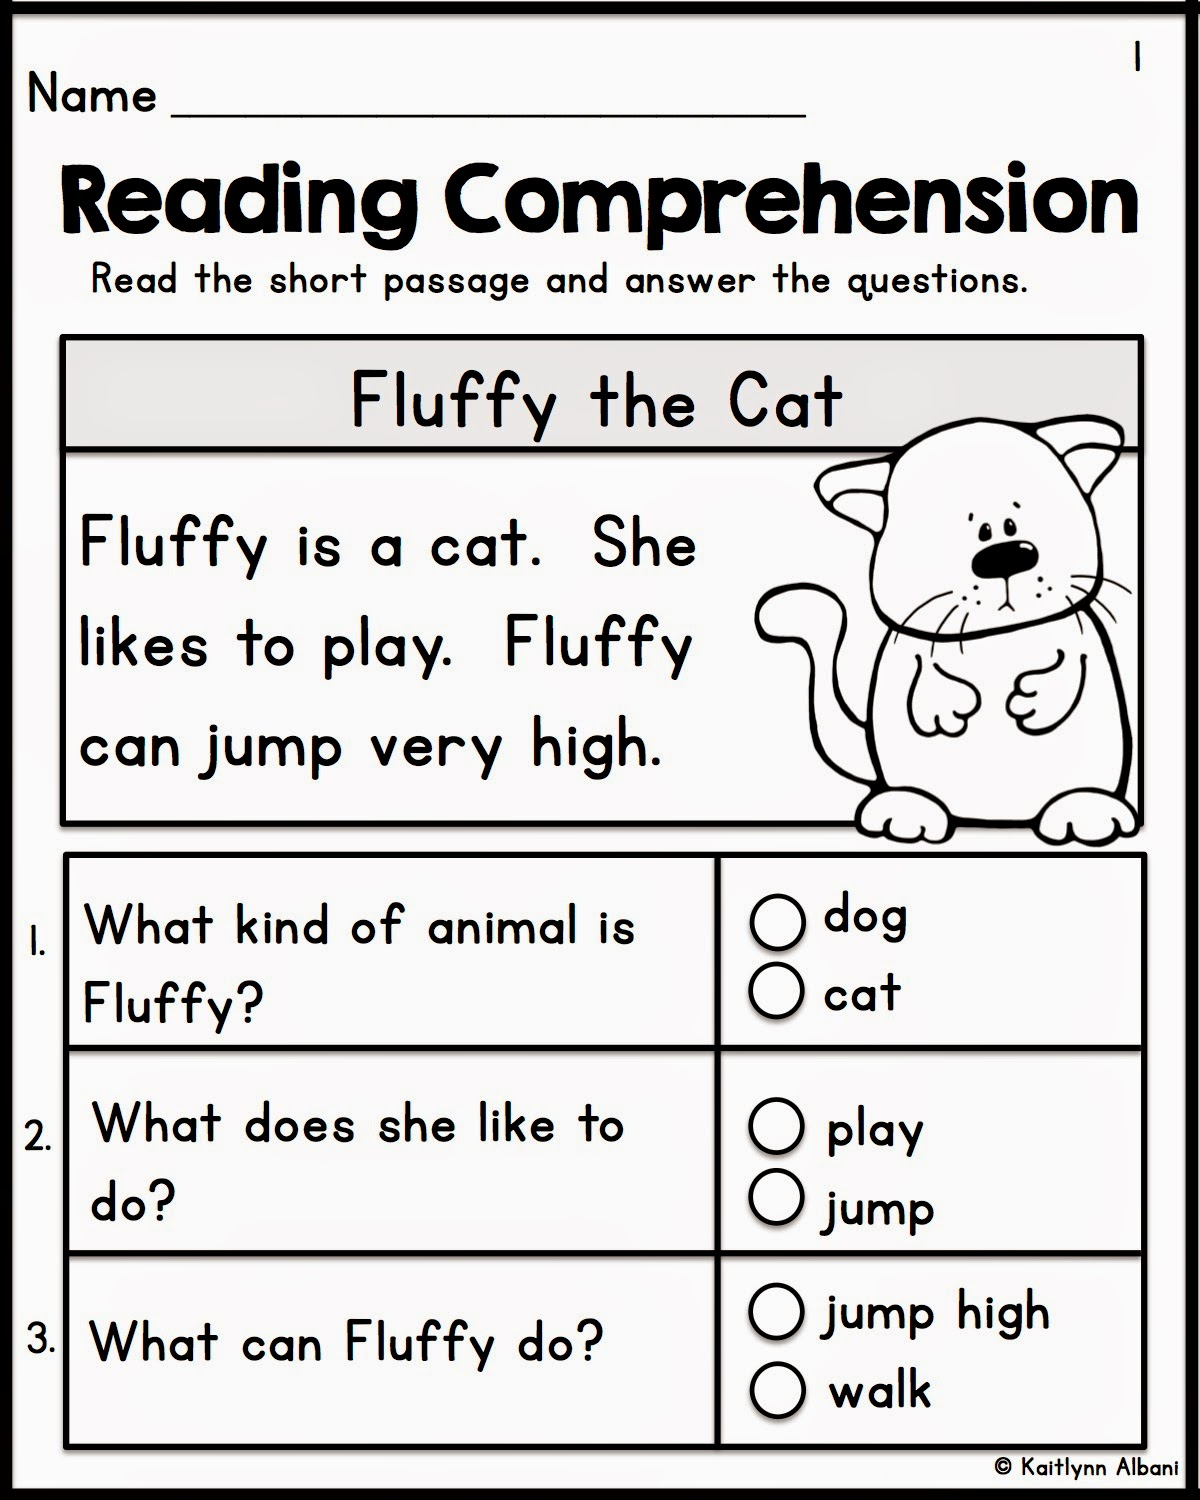 Worksheet Reading Comprehension Passages For Kindergarten kindergarten reading comprehension questions scalien the best of teacher entrepreneurs ii passages